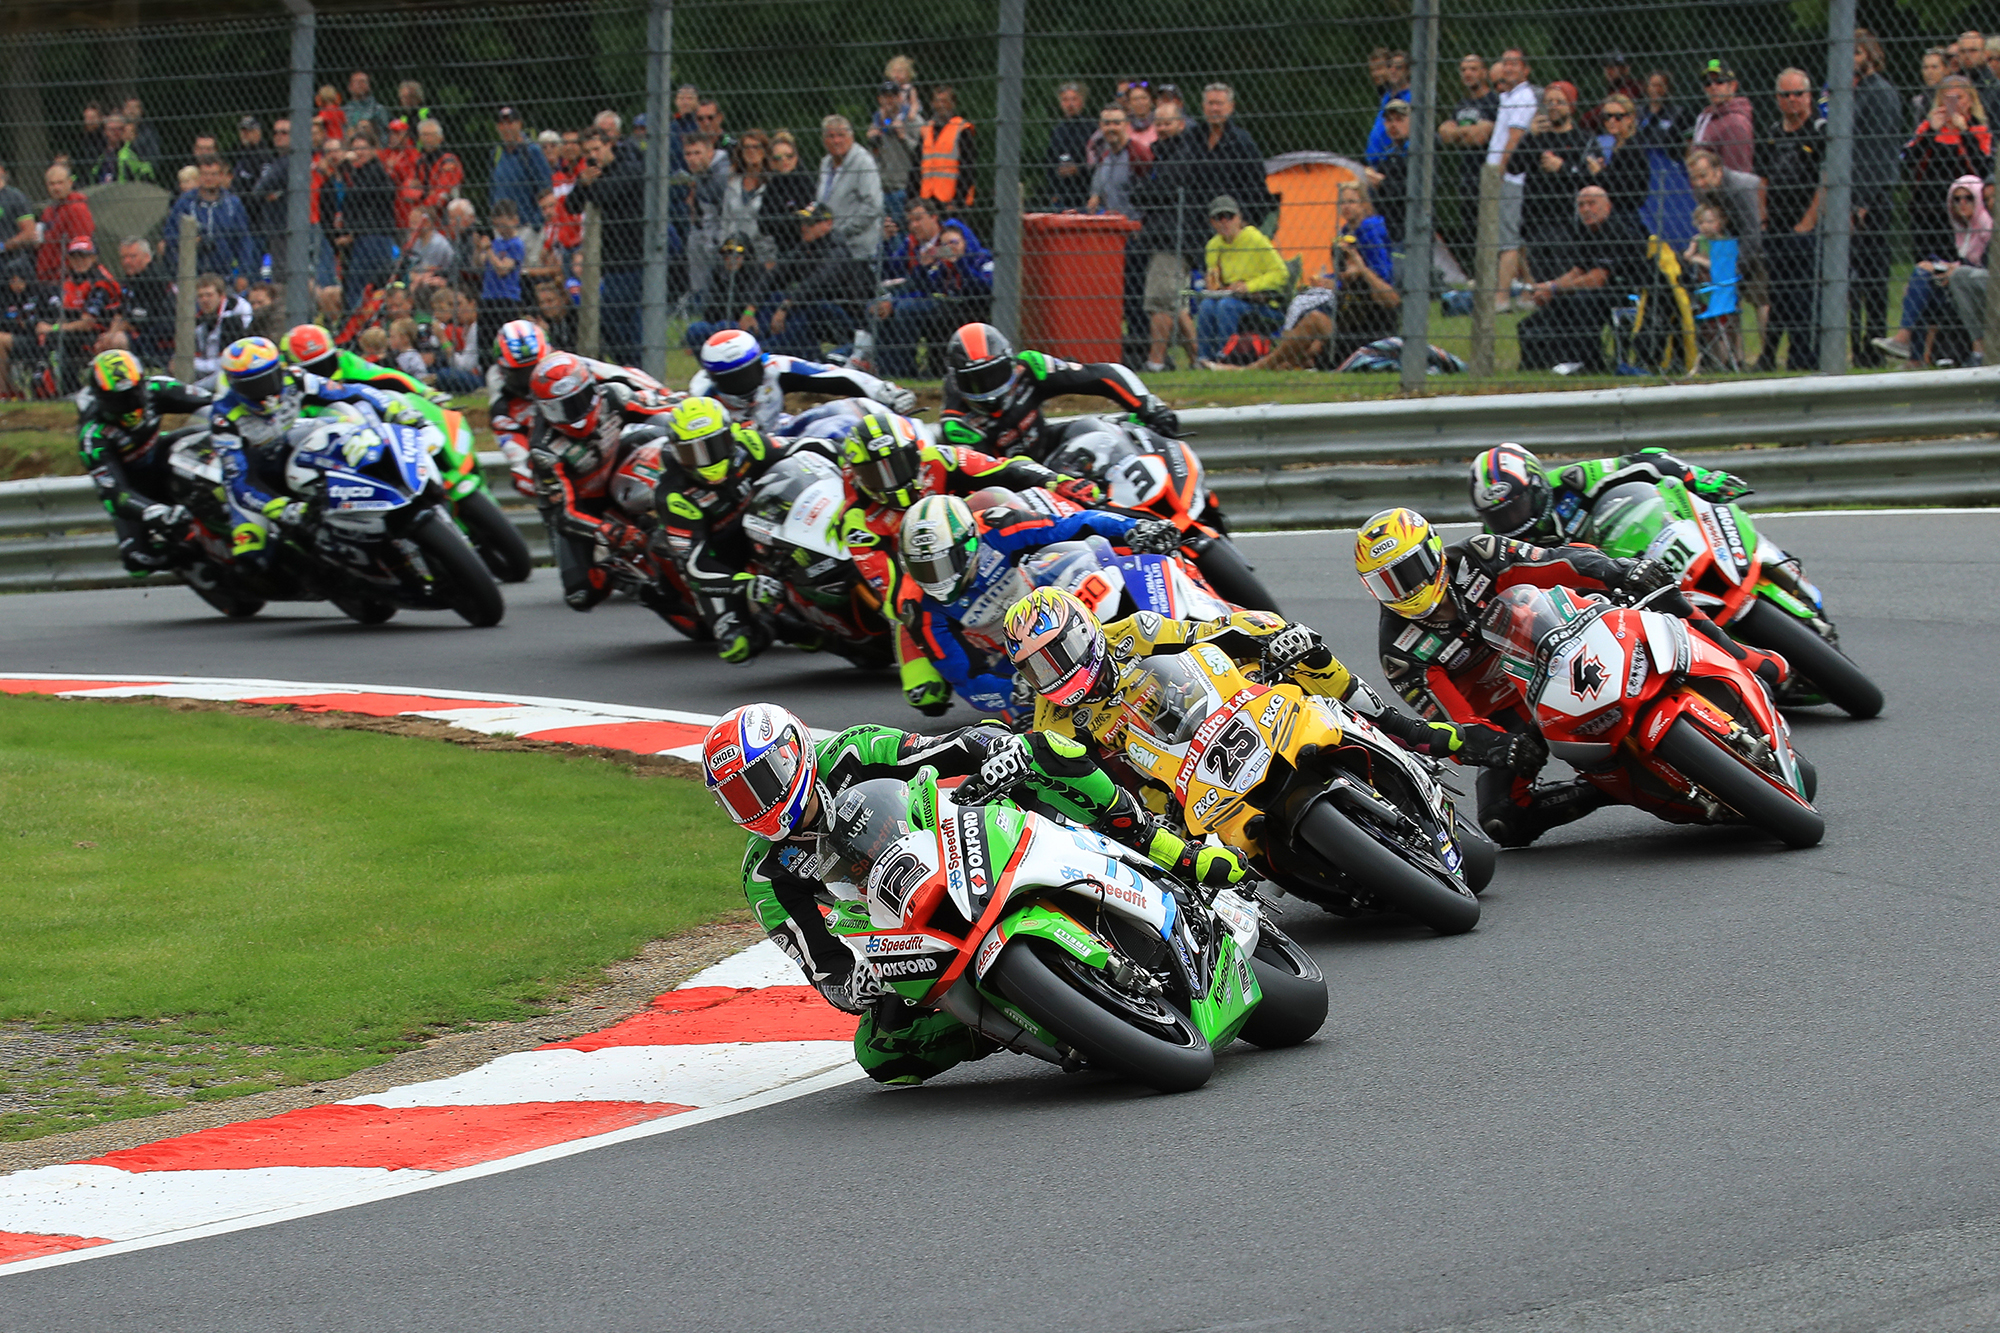 Superbikes in action